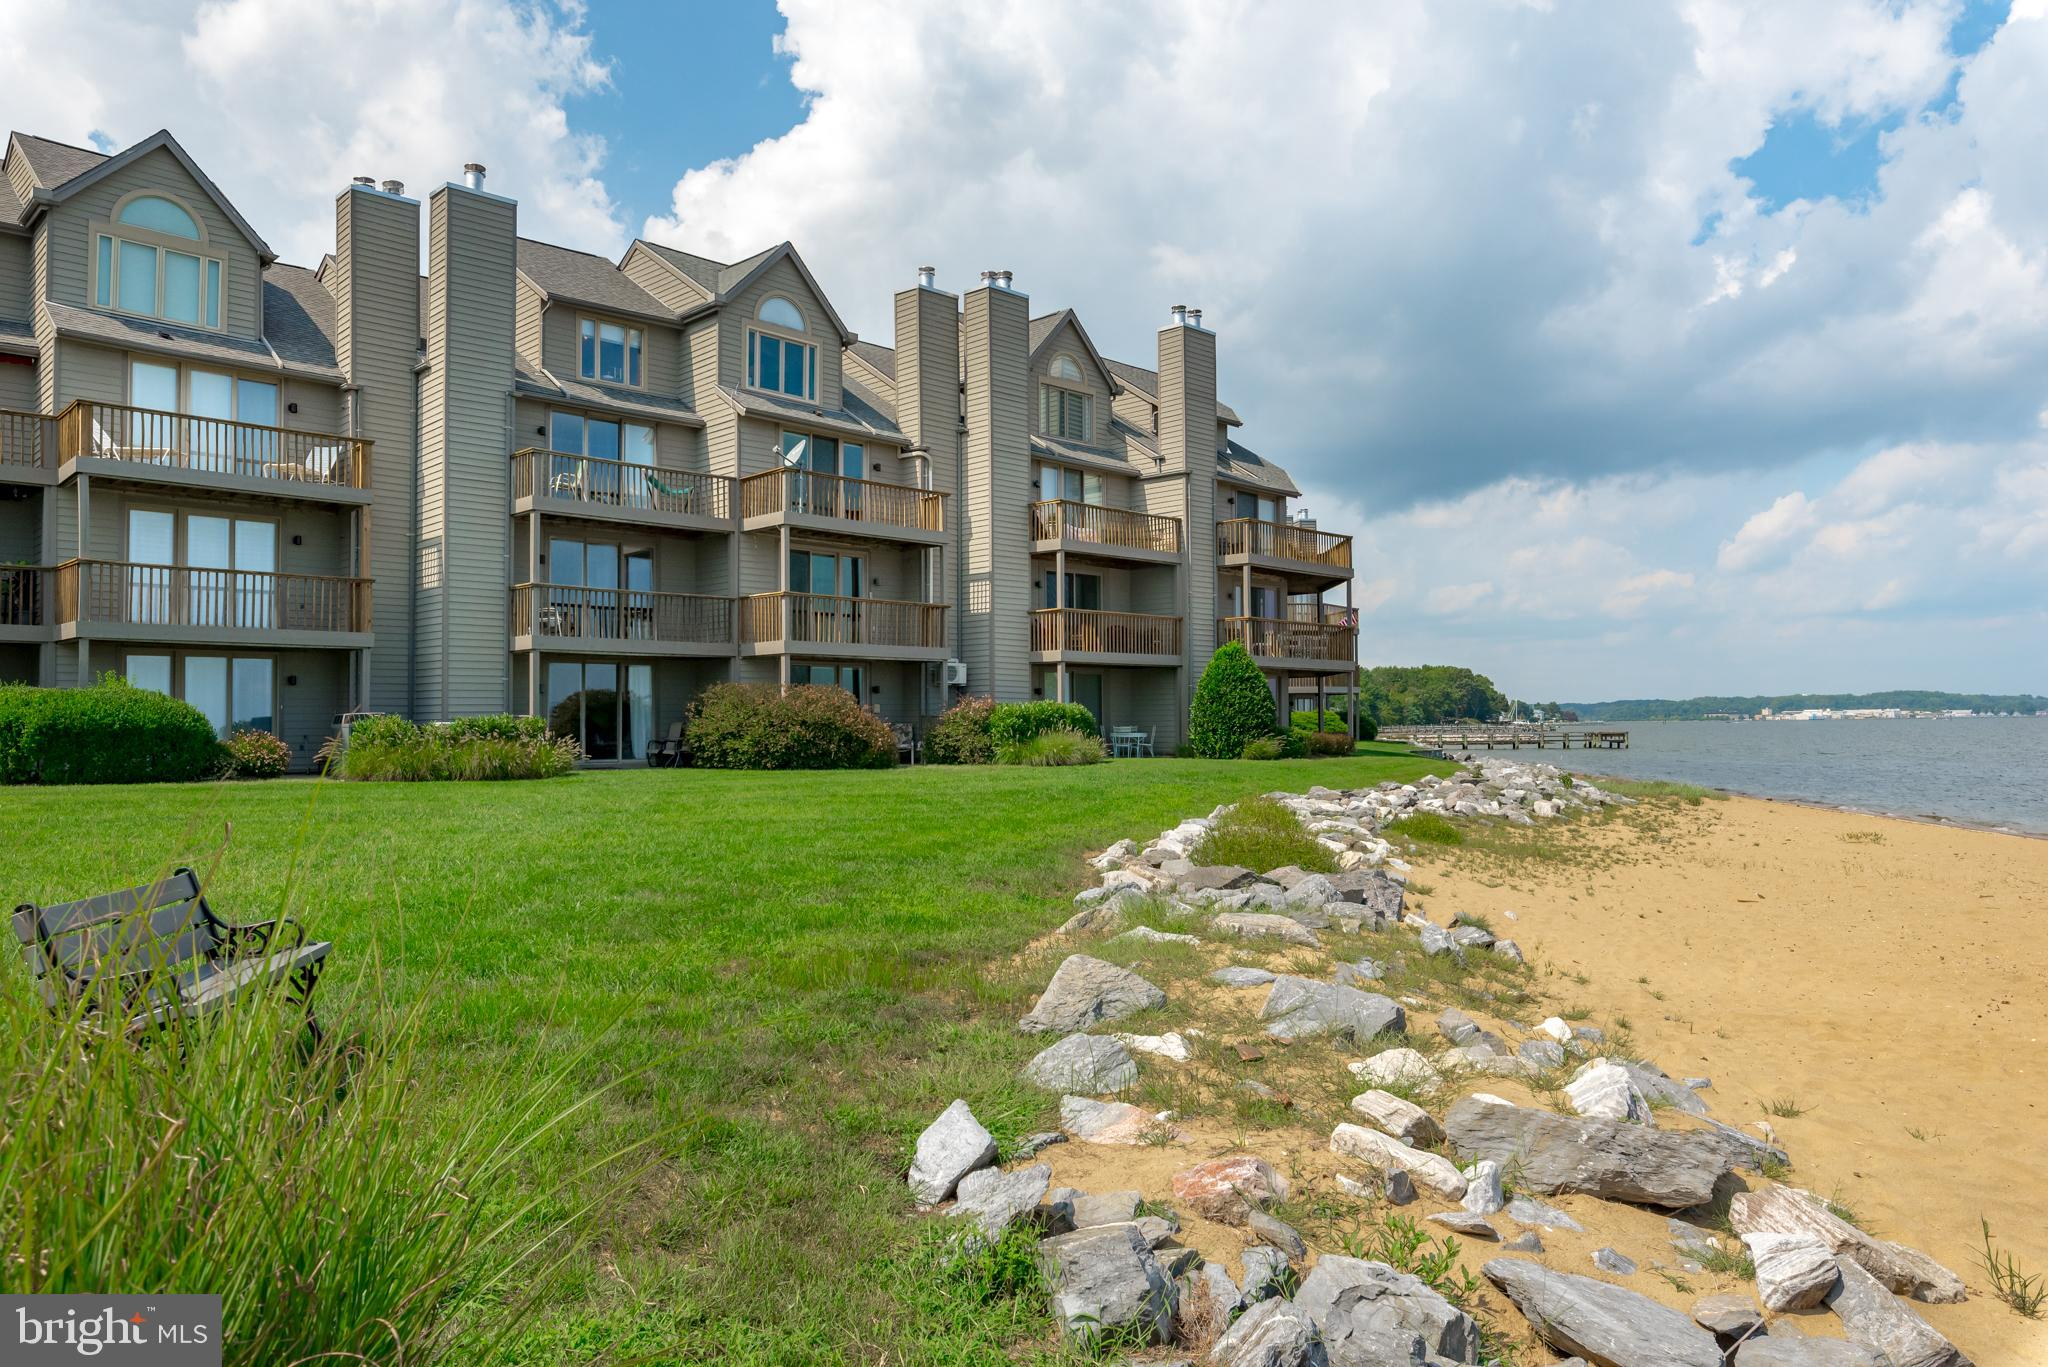 Luxurious Townhome offering  expansive water views of the Chesapeake Bay and Bay Bridge. Wake up to the sounds of waves and views of the beach below!  Home features 4 levels of breathtaking views with an elevator for easy access to all levels.  Updated all-white eat in gourmet kitchen. Remodeled large Primary Suite with waterfront deck, dual walk-in showers and double vanities. All the bedrooms have been updated to include custom cabinetry, solid wood doors and crown molding. All hardwood floors and recent exterior sliders. One car garage and workshop . Walk out the lower level opens to the fabulous community beach. The gated community offers amenities that makes you feel as if you are on vacation all year round.  Two pools, four tennis courts, jogging and walking paths, piers, kayak launch, marina, beaches as well as Sam's Waterfront restaurant with its very own tiki bar. Minutes to Downtown Annapolis and a short boat ride down ego alley. Easy commute into Baltimore and Washington, DC.